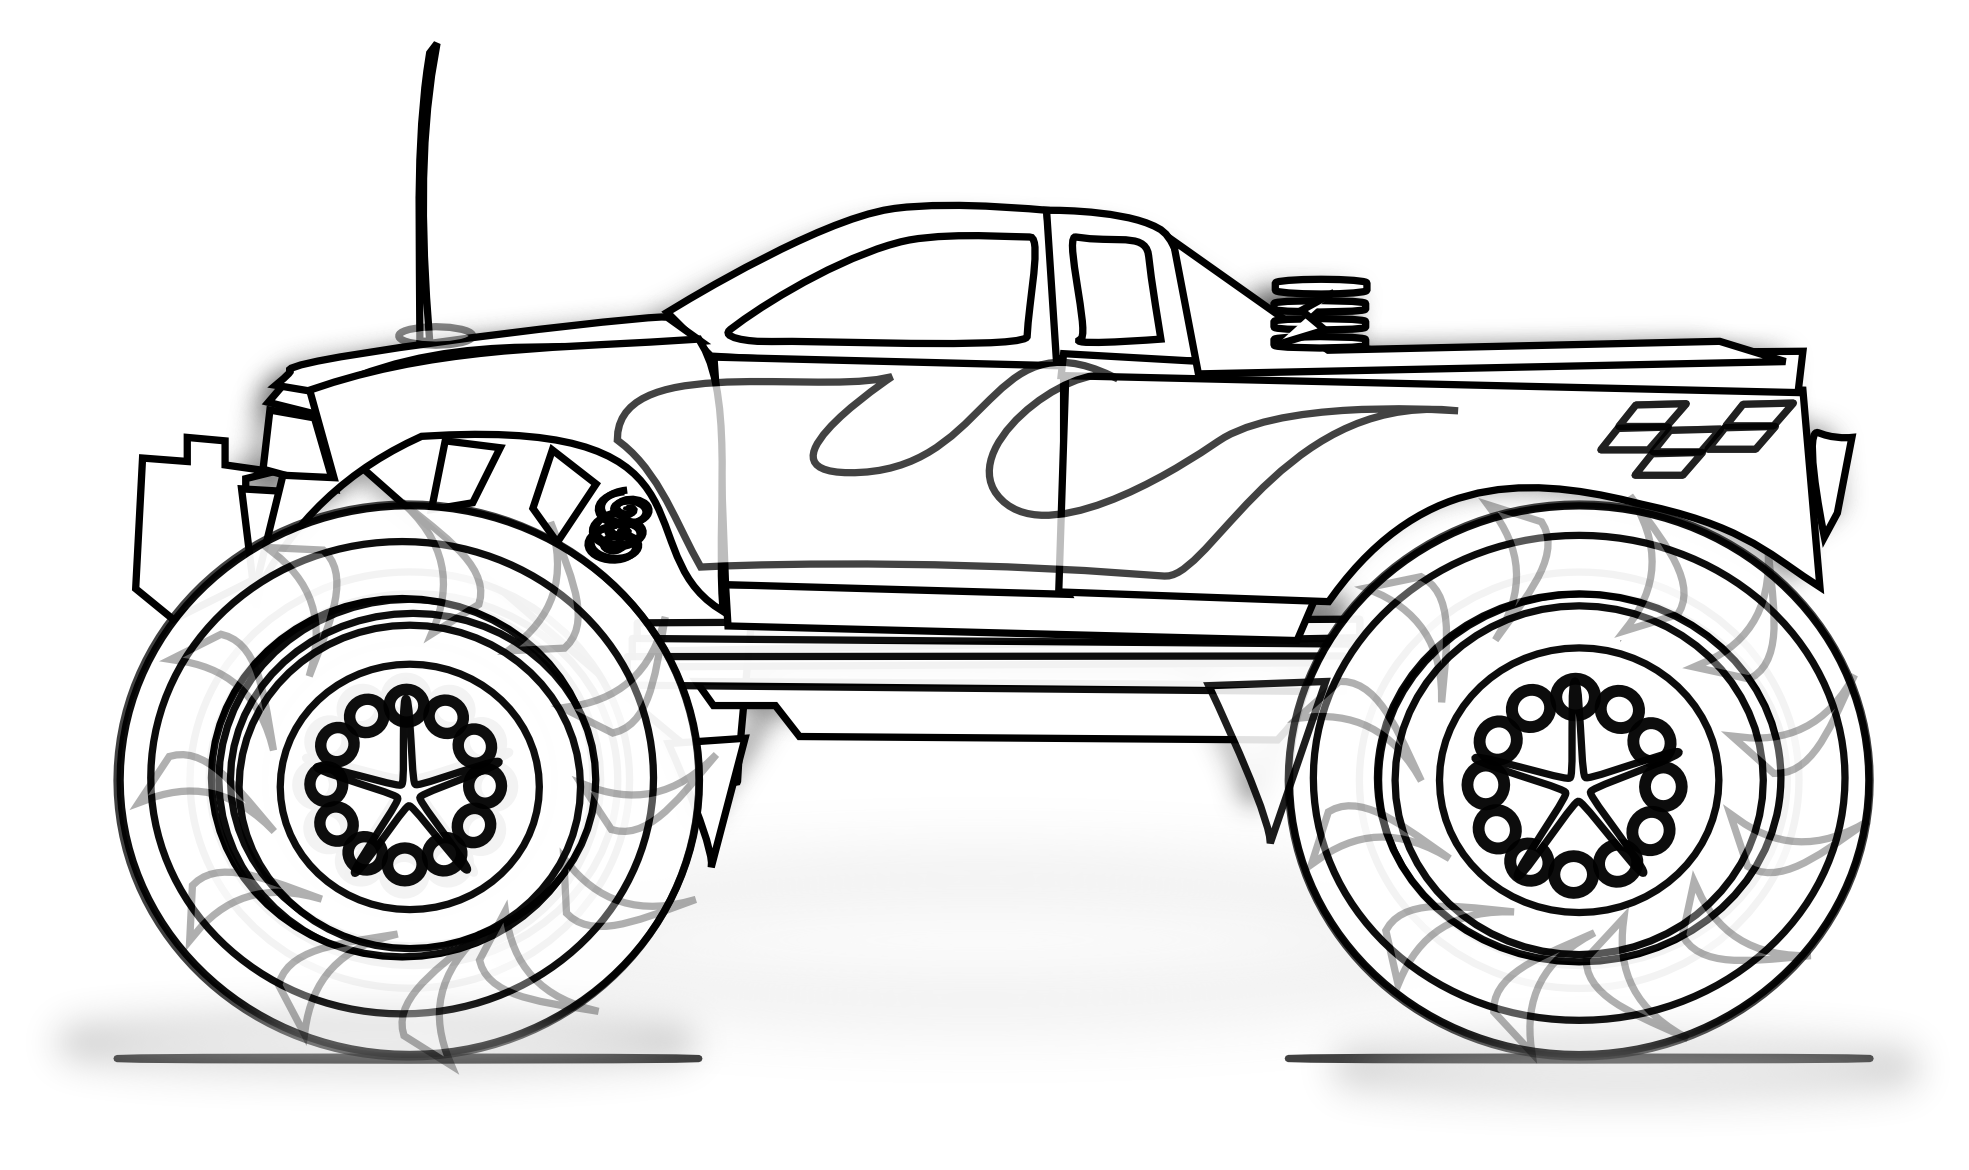 Clip Art Simple Car Coloring Pages simple car coloring pages only 2avbwz clipart kid pages